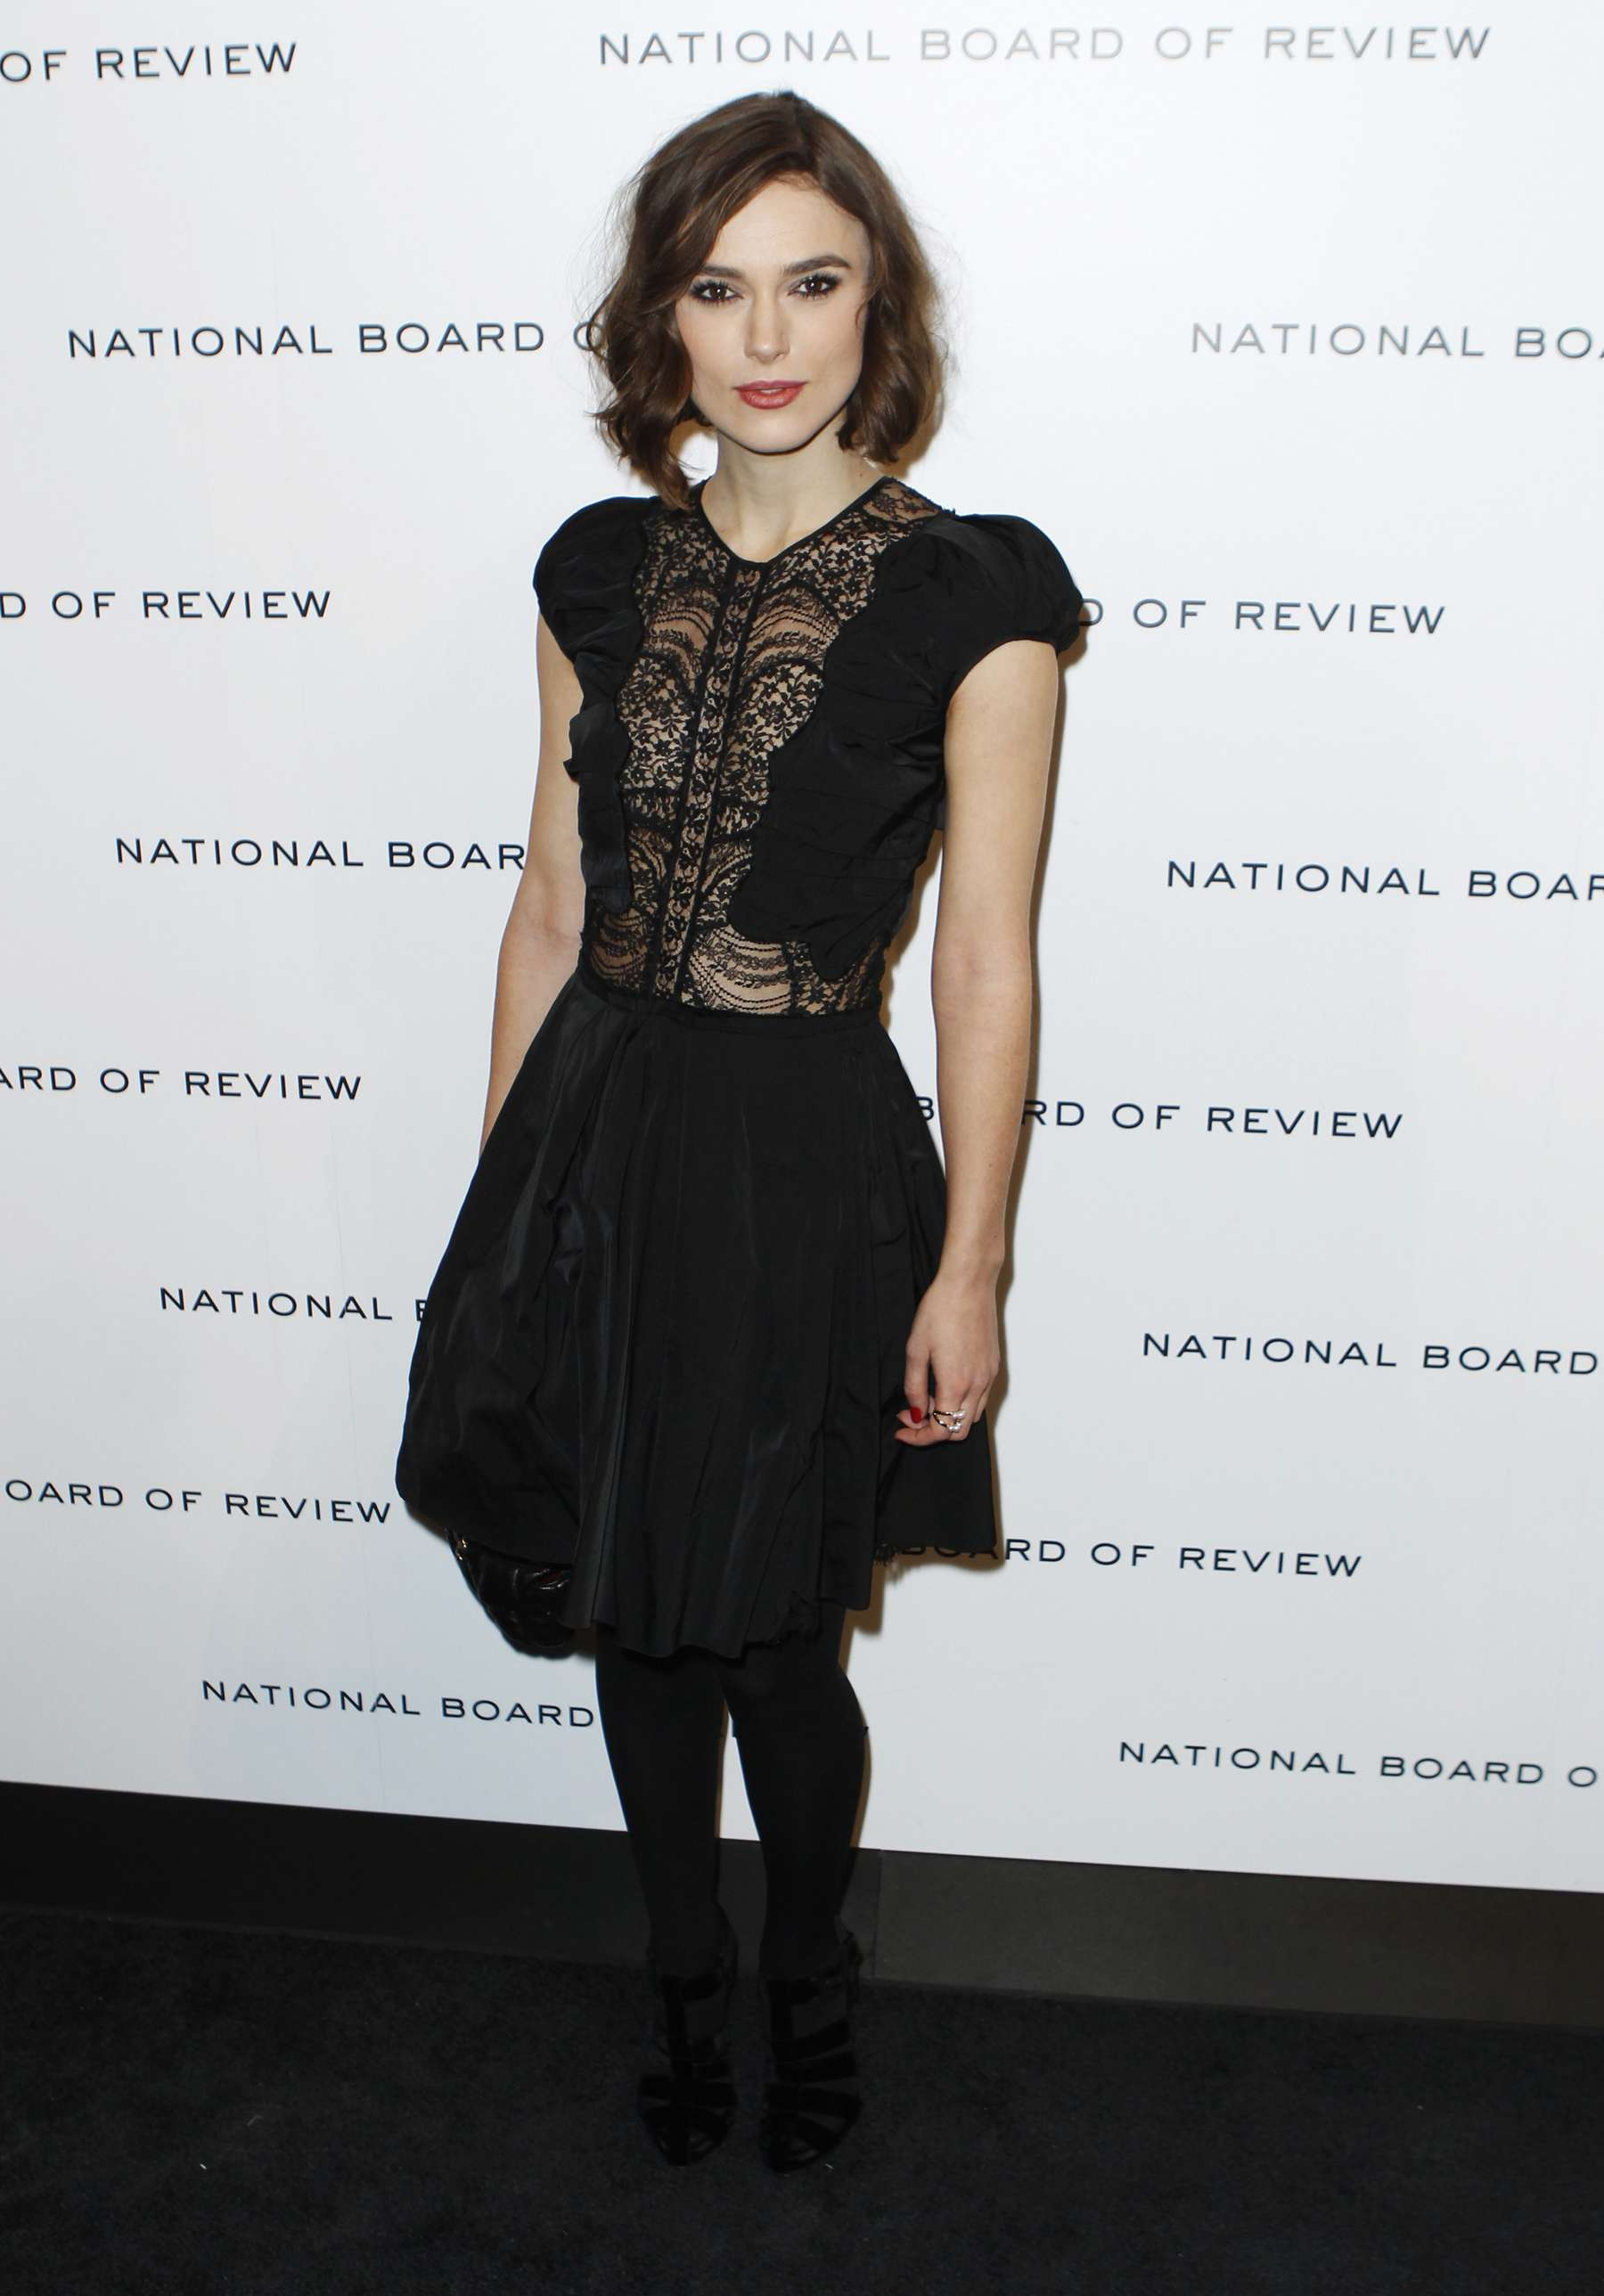 keira-knightley-national-board-of-review-awards-gala-in-nyc-05